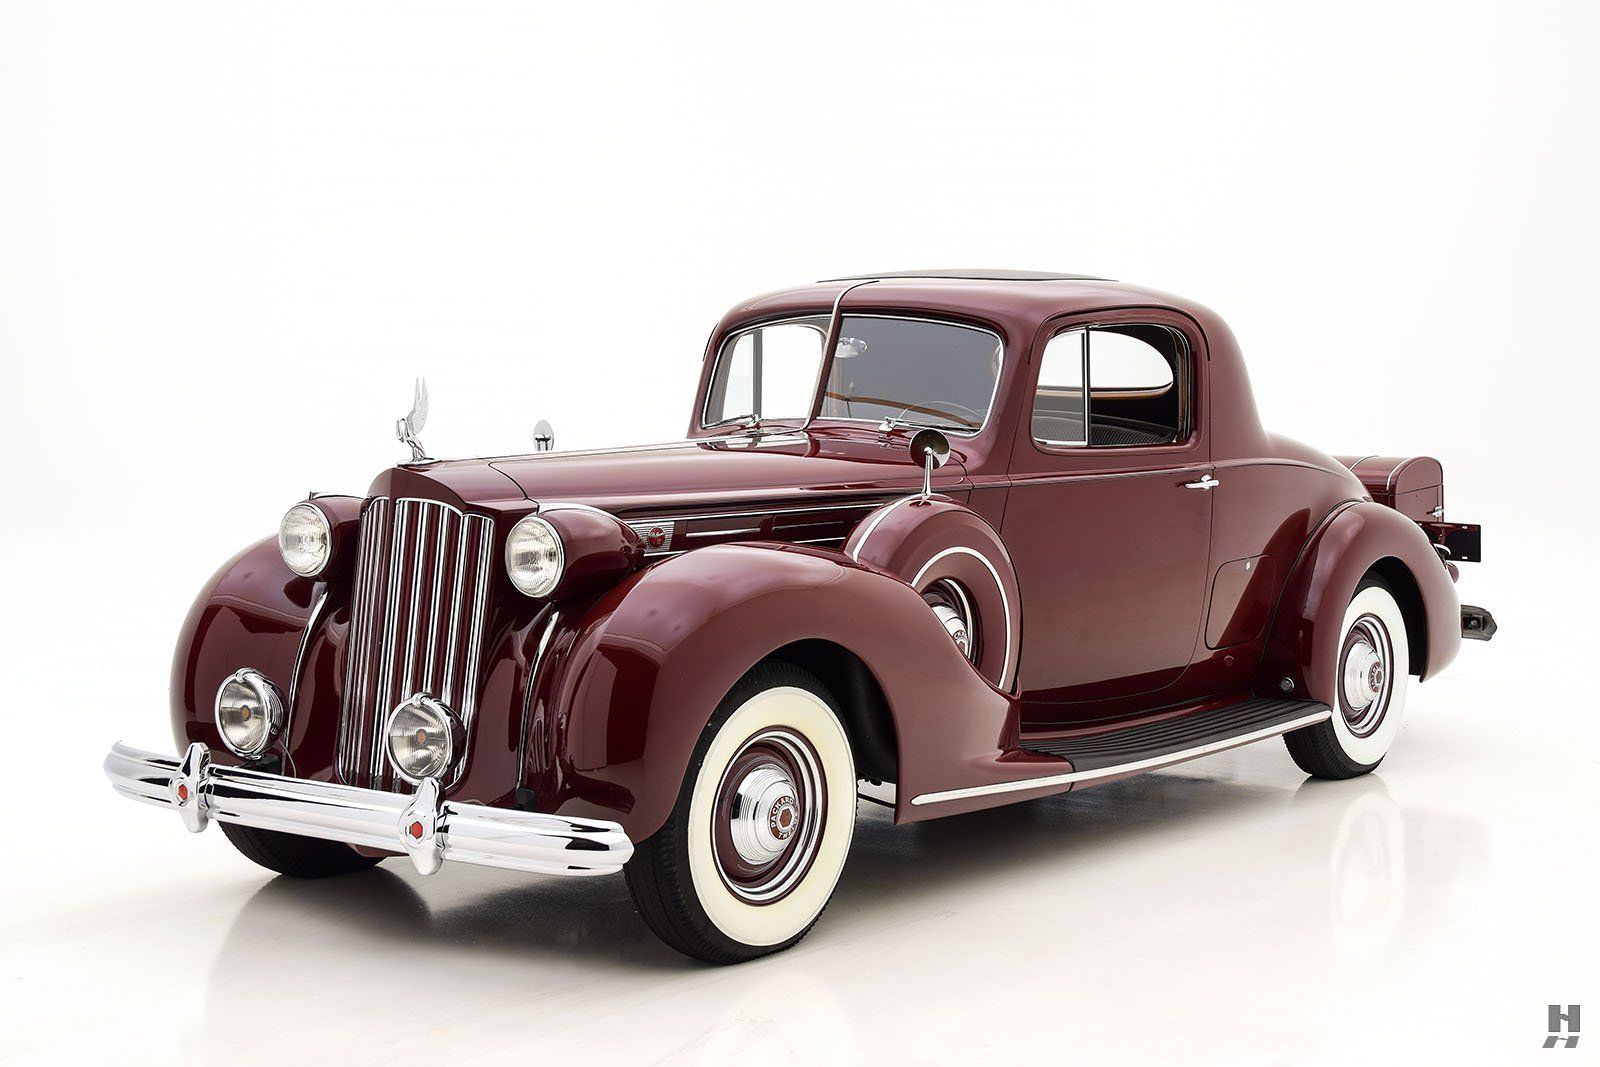 1939 Packard Twelve Coupe Classic Car For Sale | Buy 1939 Packard ...